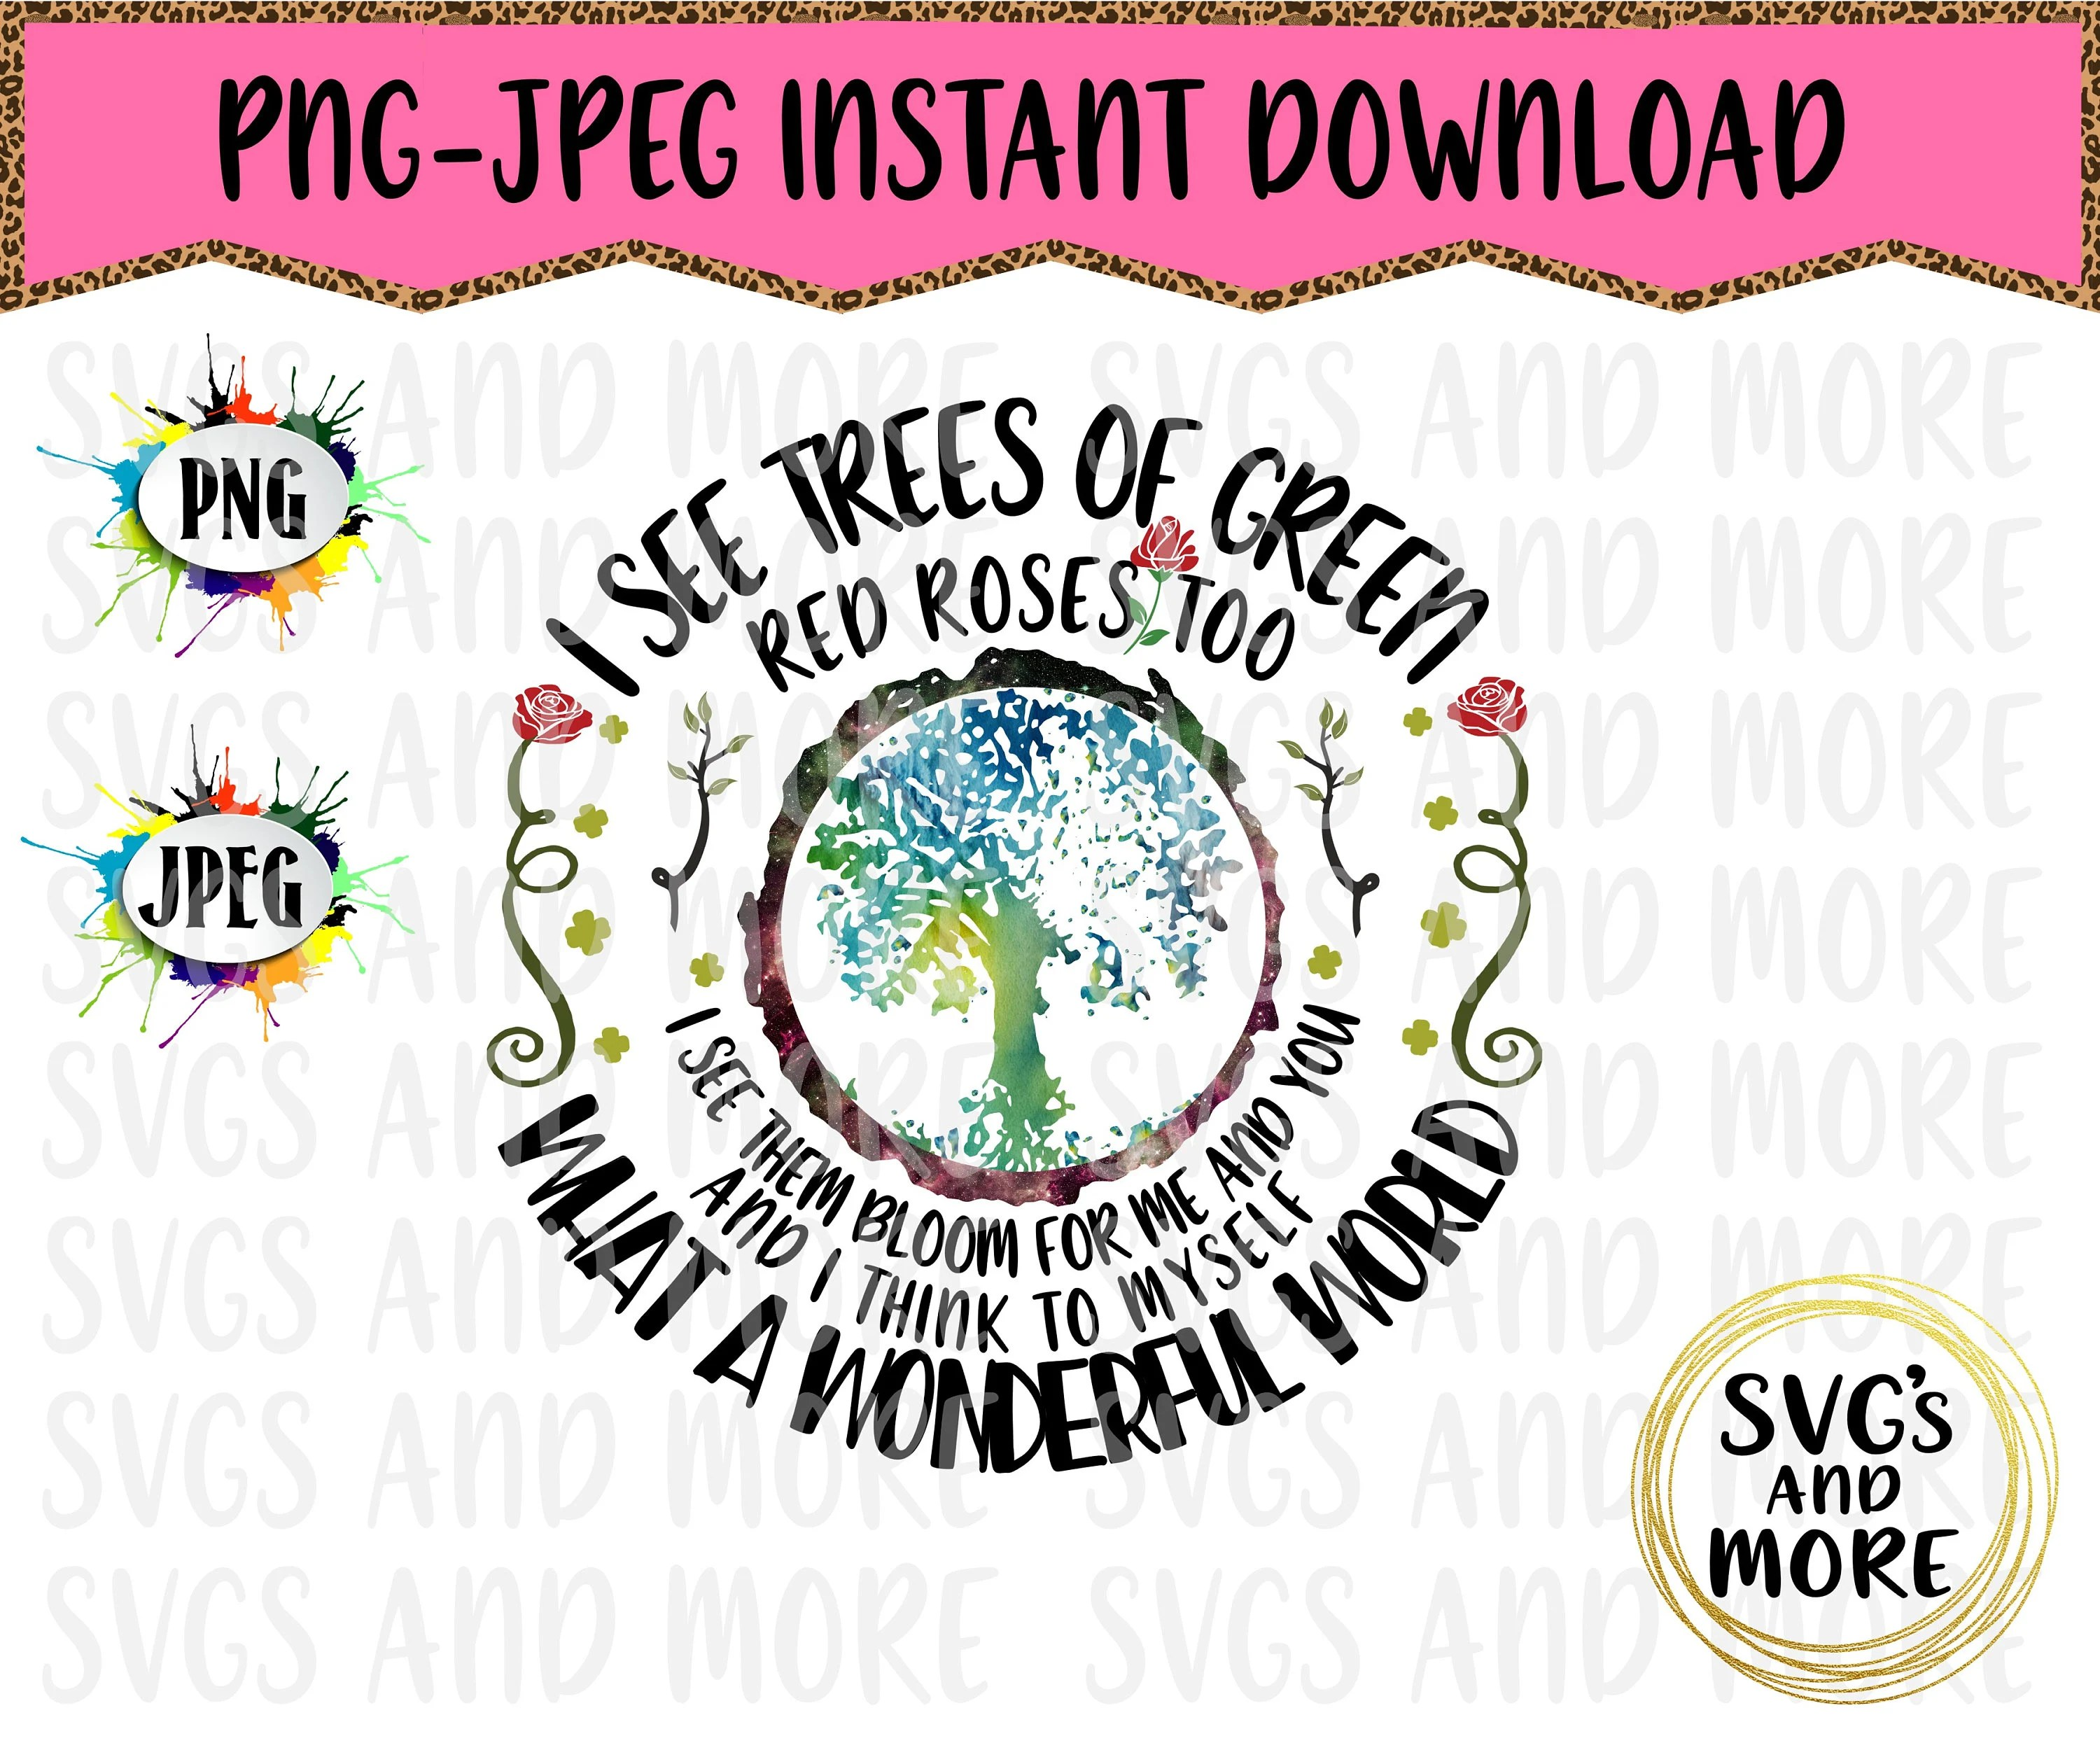 I See Trees of Green PNG JPEG Sublimation Print File Etsy